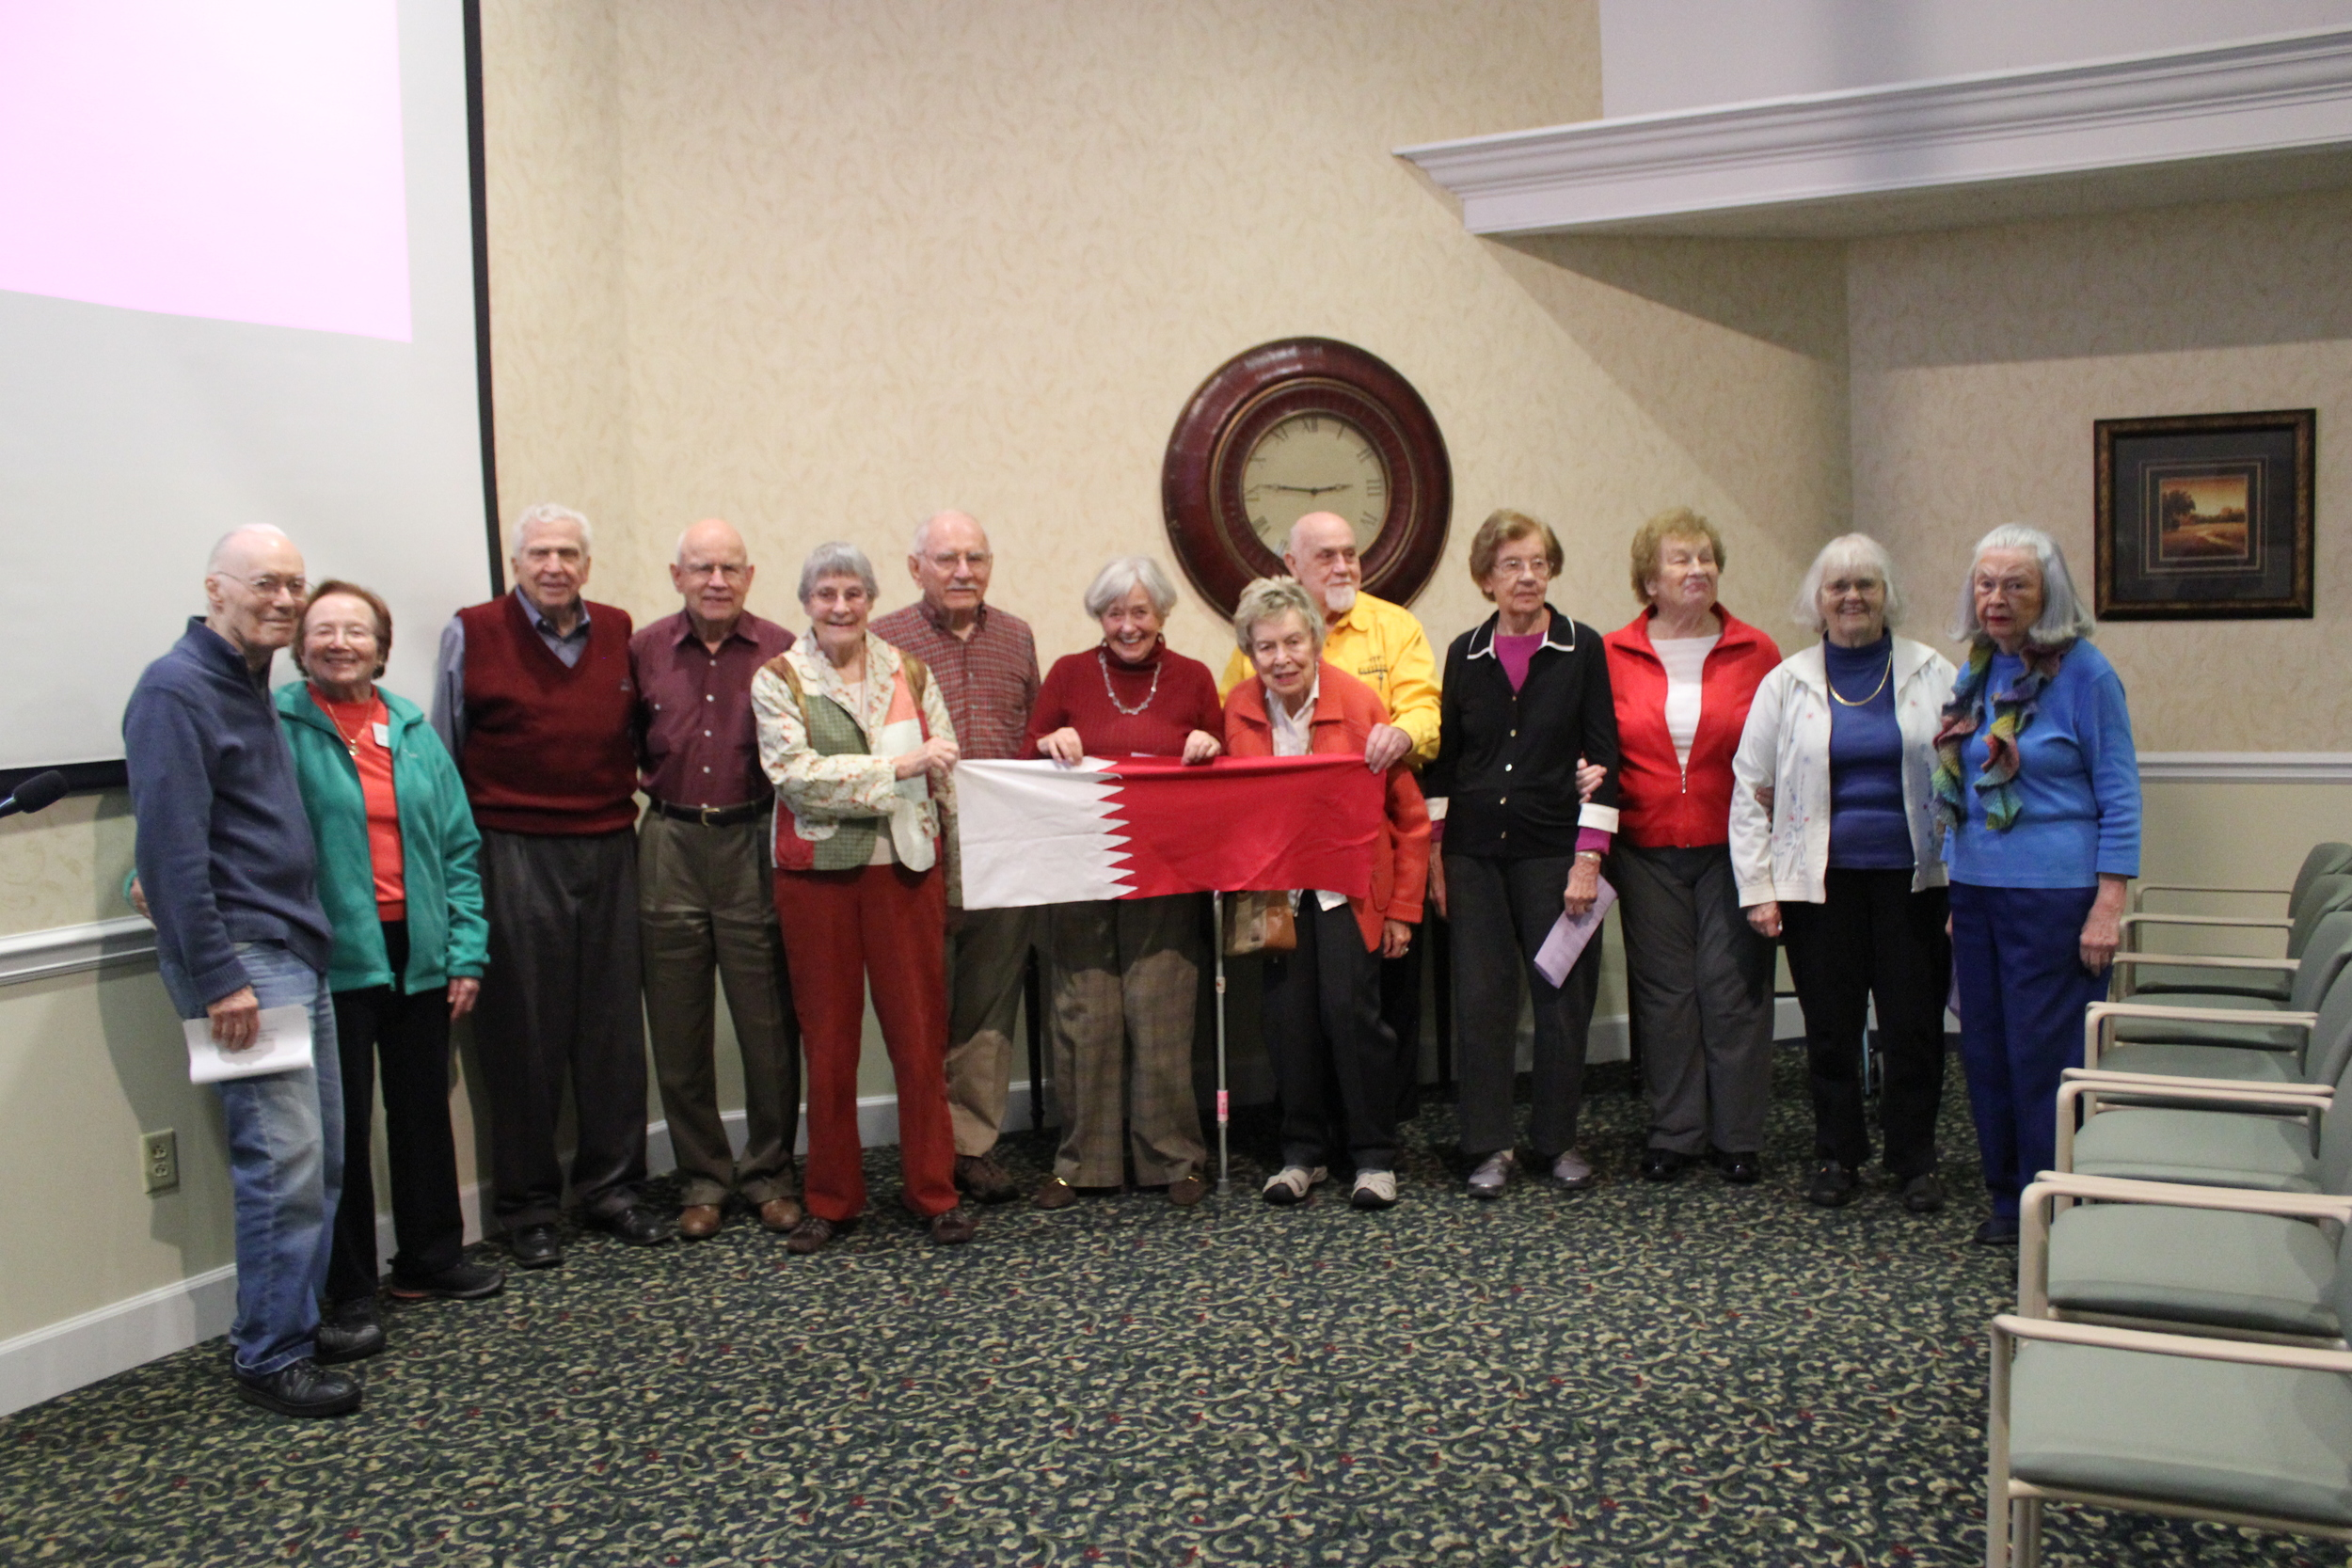 Residents at the Highlands retirement community in the United States learn about Qatar on Qatar's independence day (Dec 18).